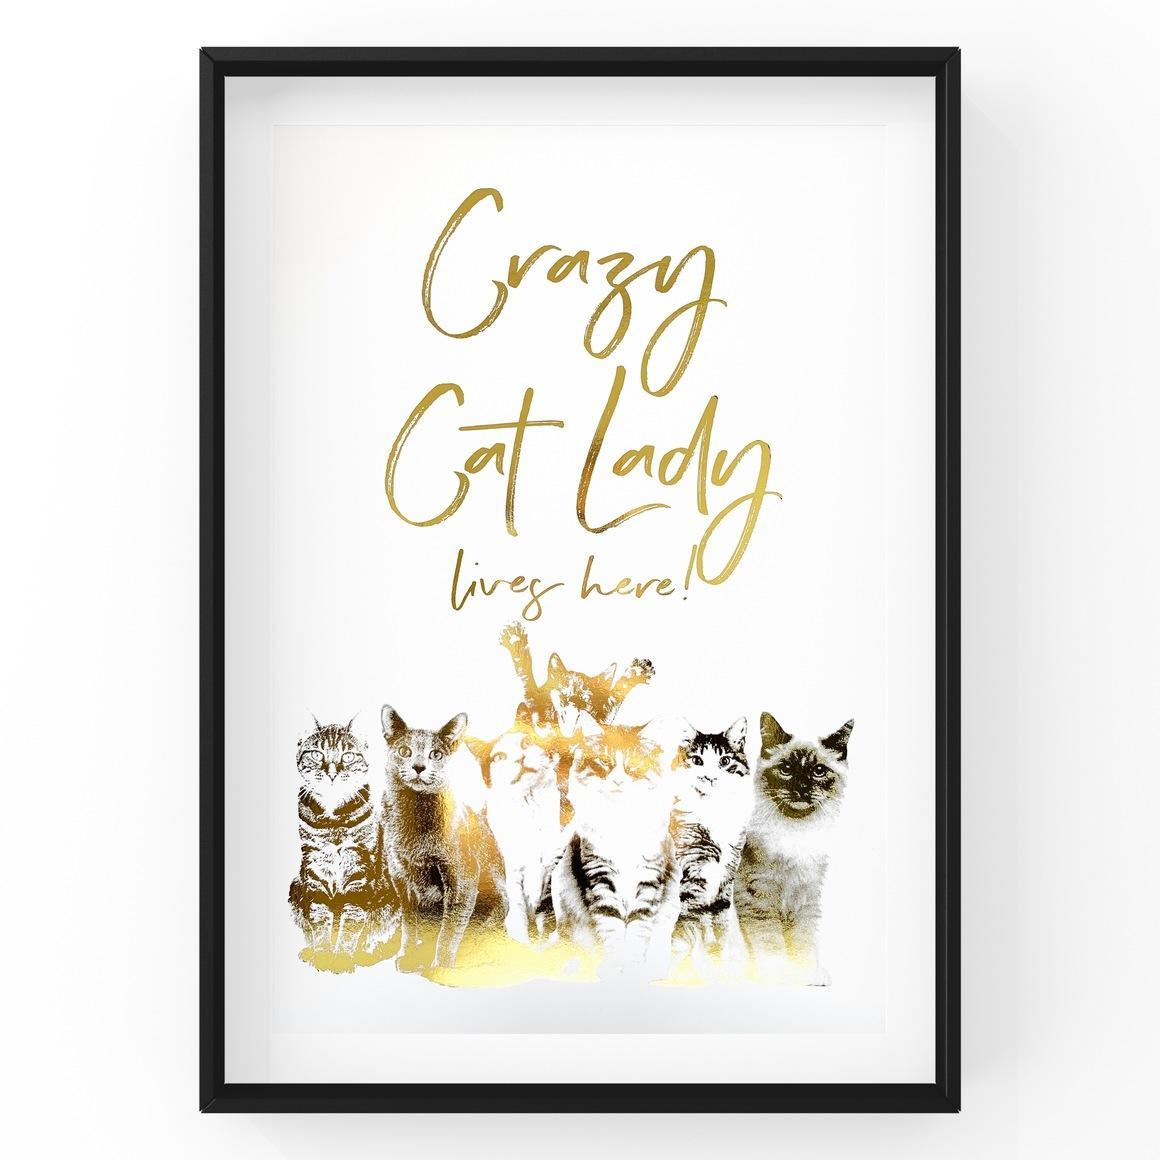 Crazy Cat Lady Lives Here | Trada Marketplace